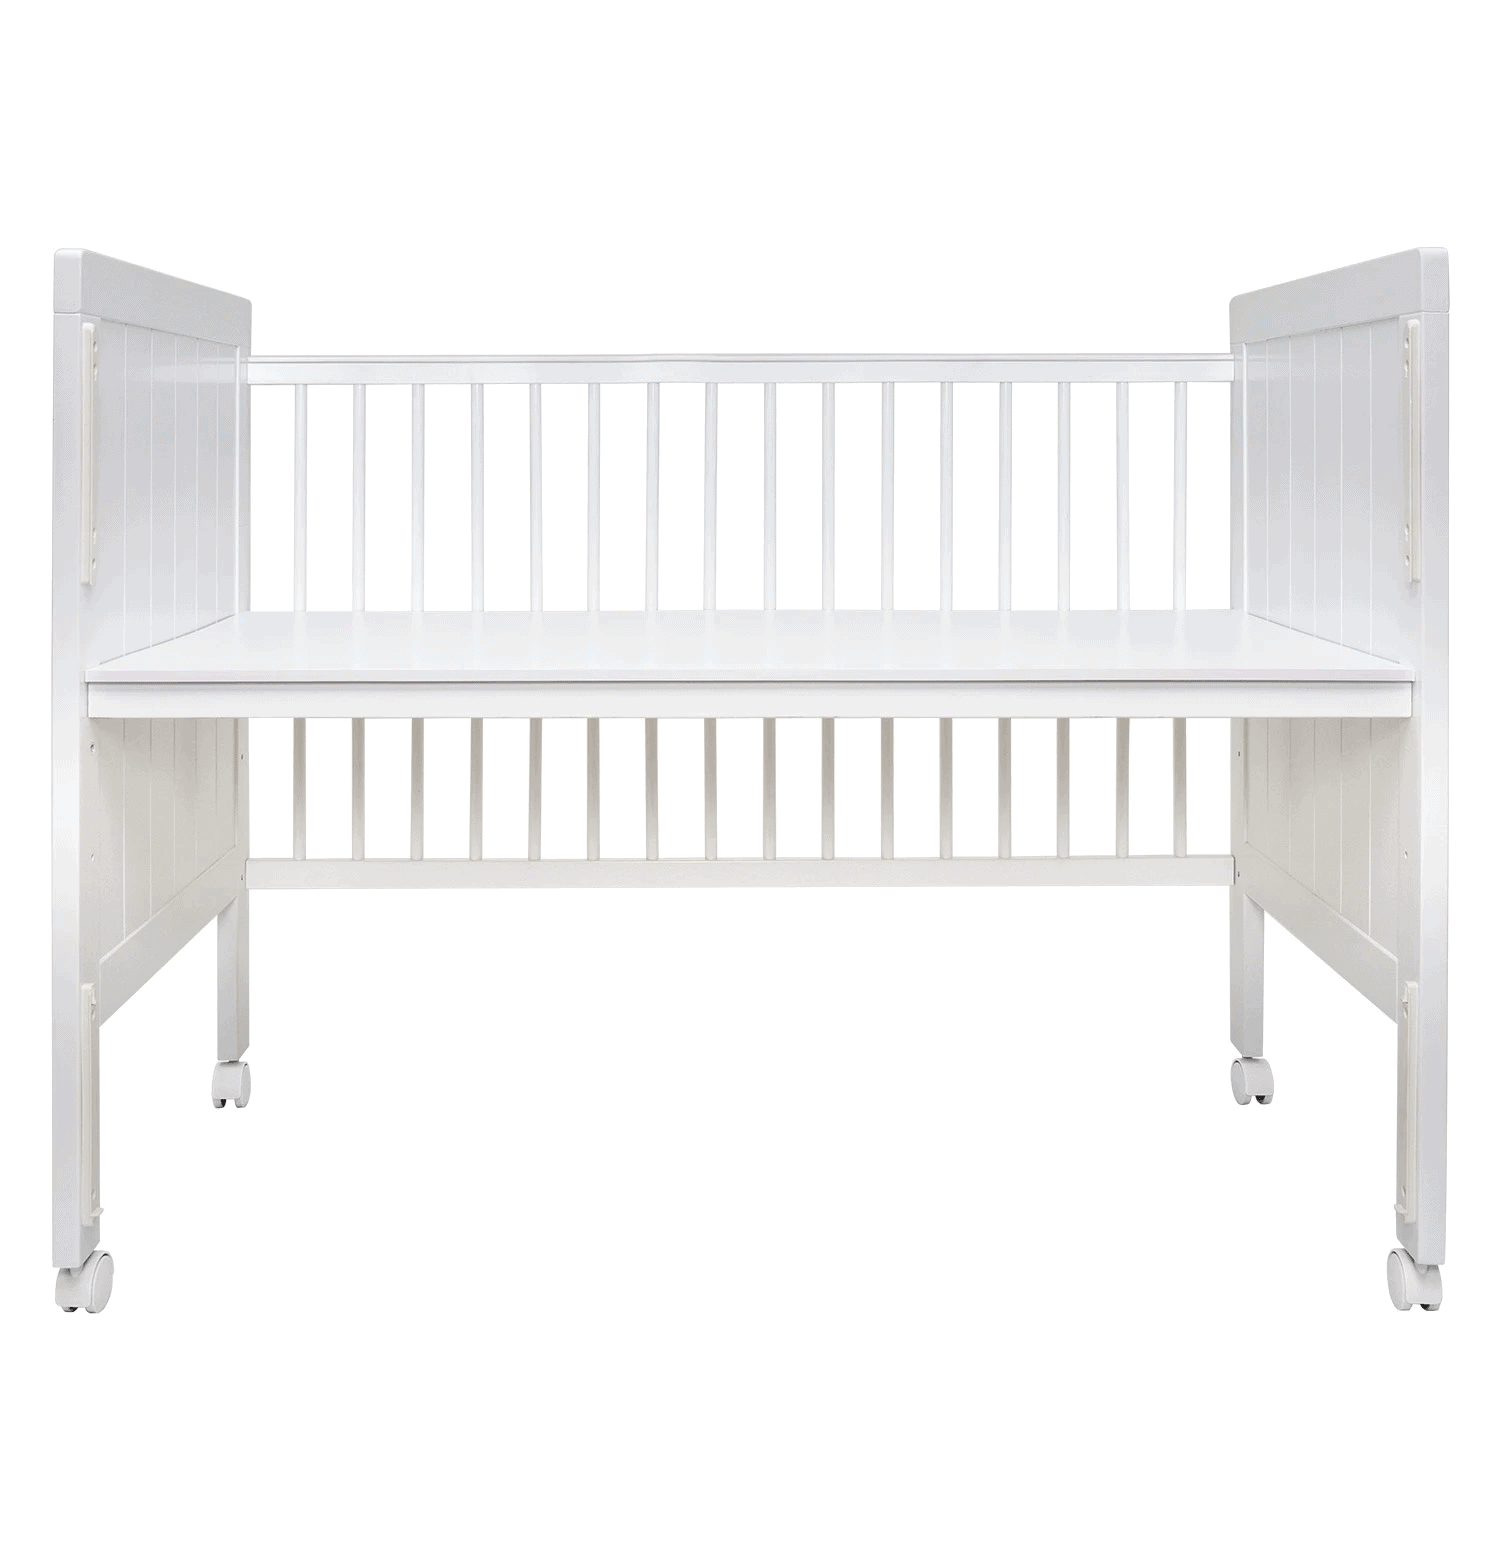 Bonbijou Atlas 5-in-1 Baby Cot with Mattress (Free installation and Delivery) is best Cribs Online for baby in Singapore